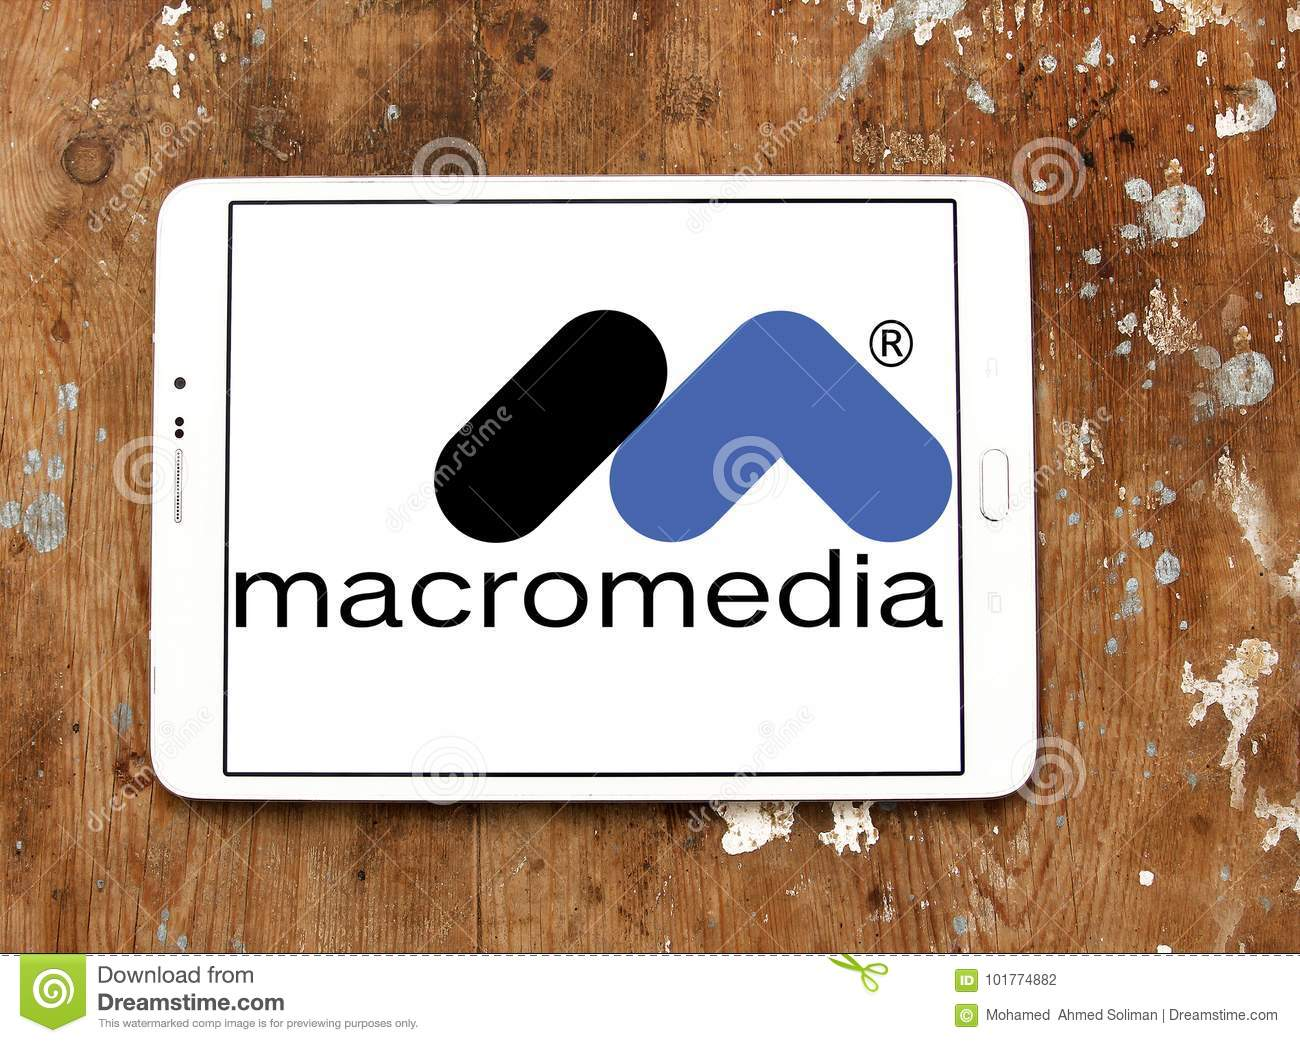 Logo Of Macromedia Software Company On Samsung Tablet On Wooden Background Macromedia Is An American Graphics Multimedia And Web Development Software